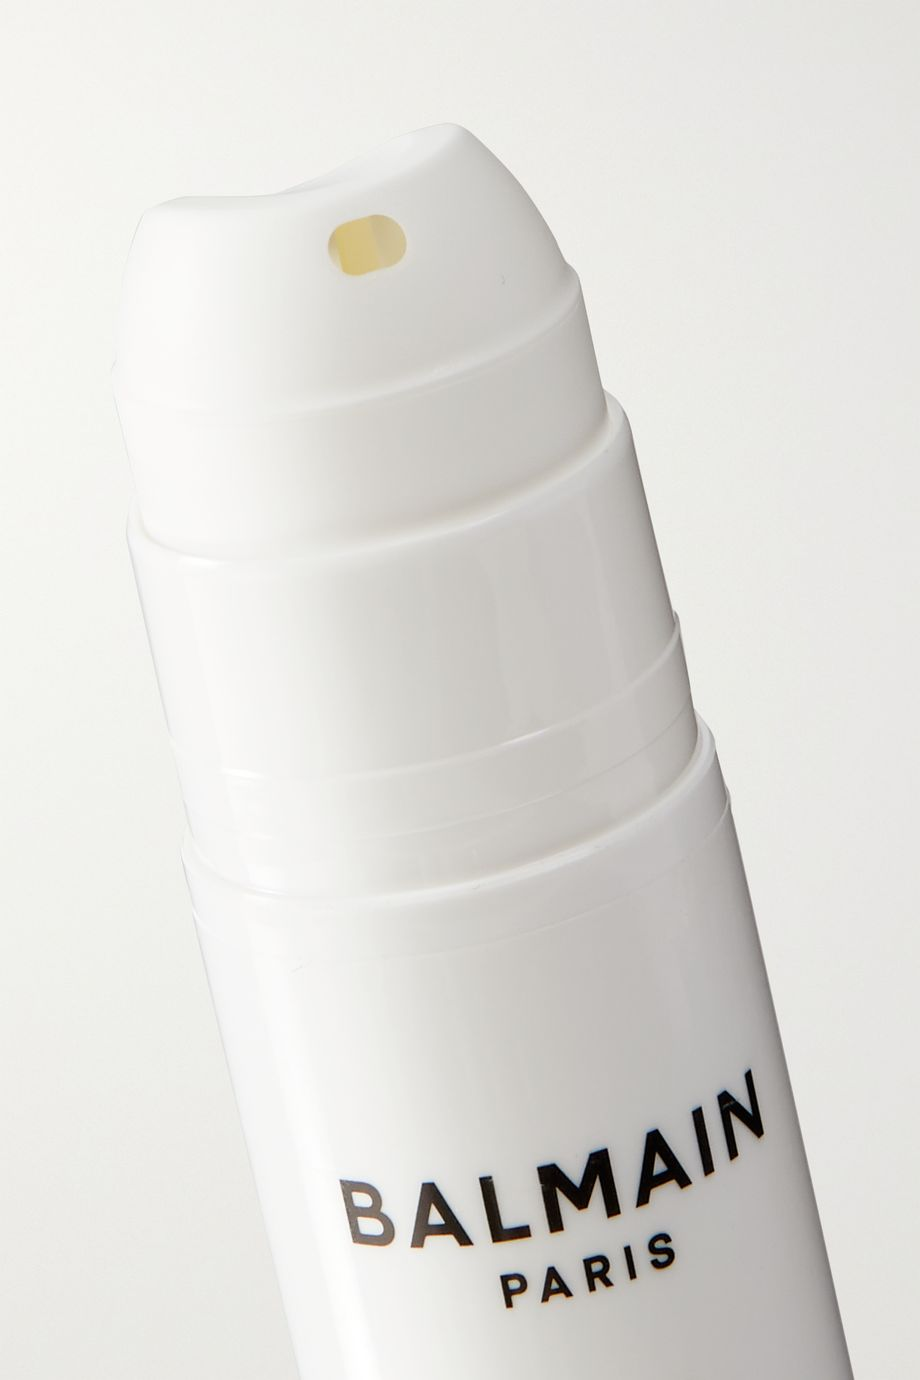 BALMAIN PARIS HAIR COUTURE Matt Paste, 100ml